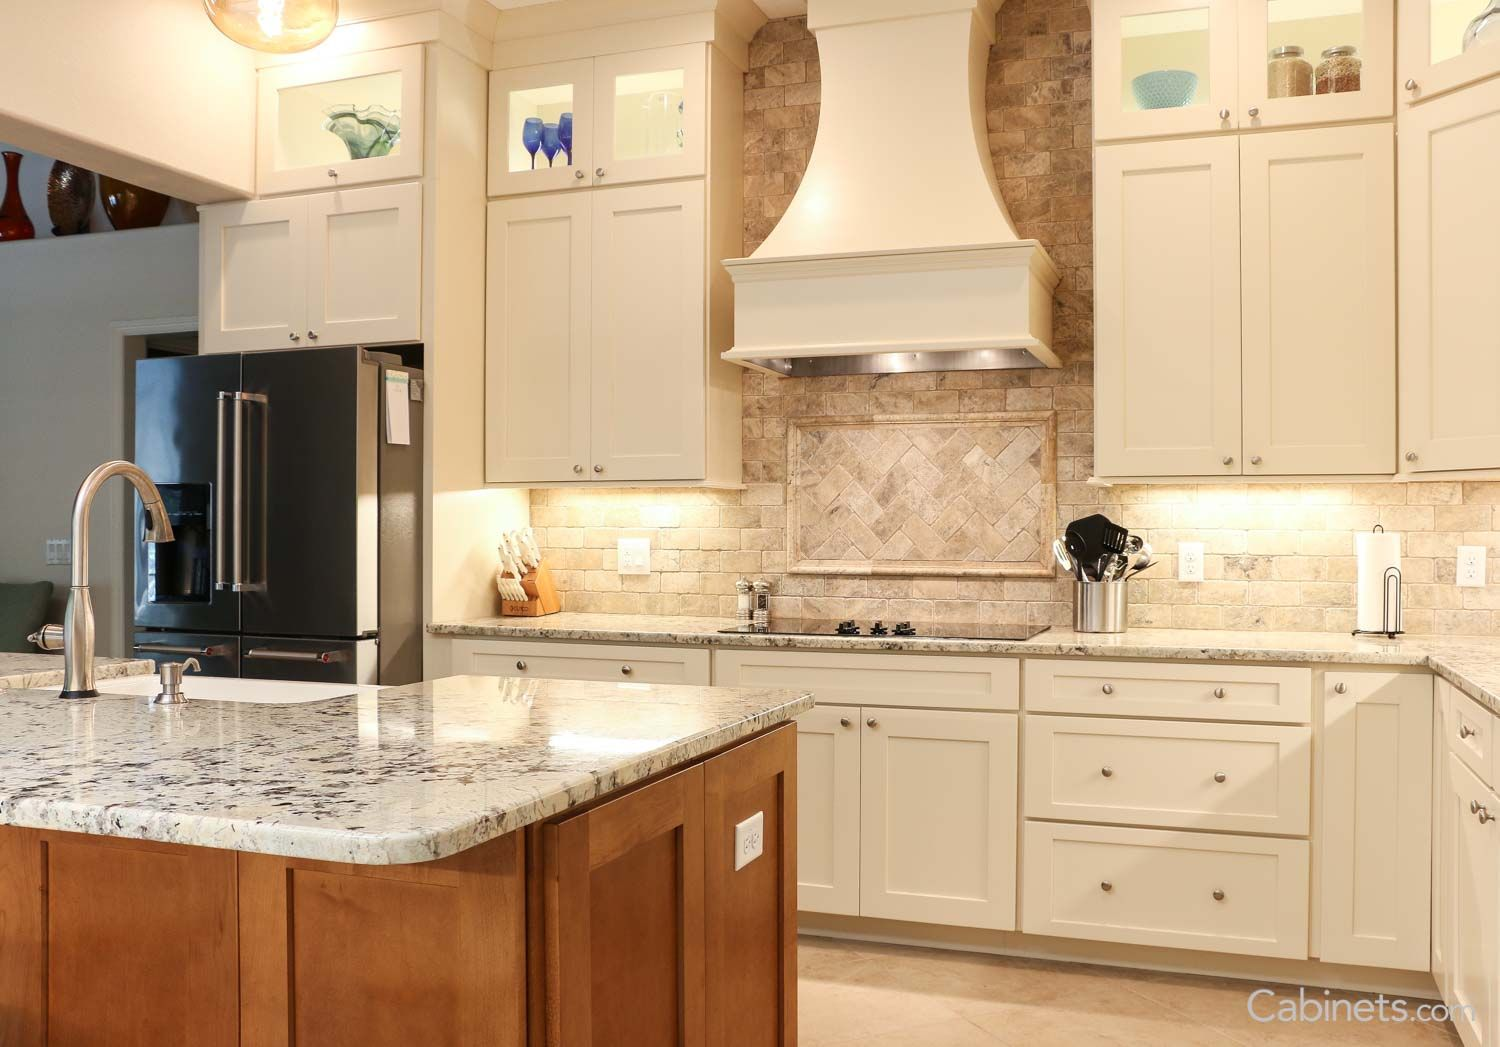 Gorgeous Off White Shaker Kitchen Cabinets Antique White Kitchen White Shaker Kitchen Cabinets Antique White Cabinets